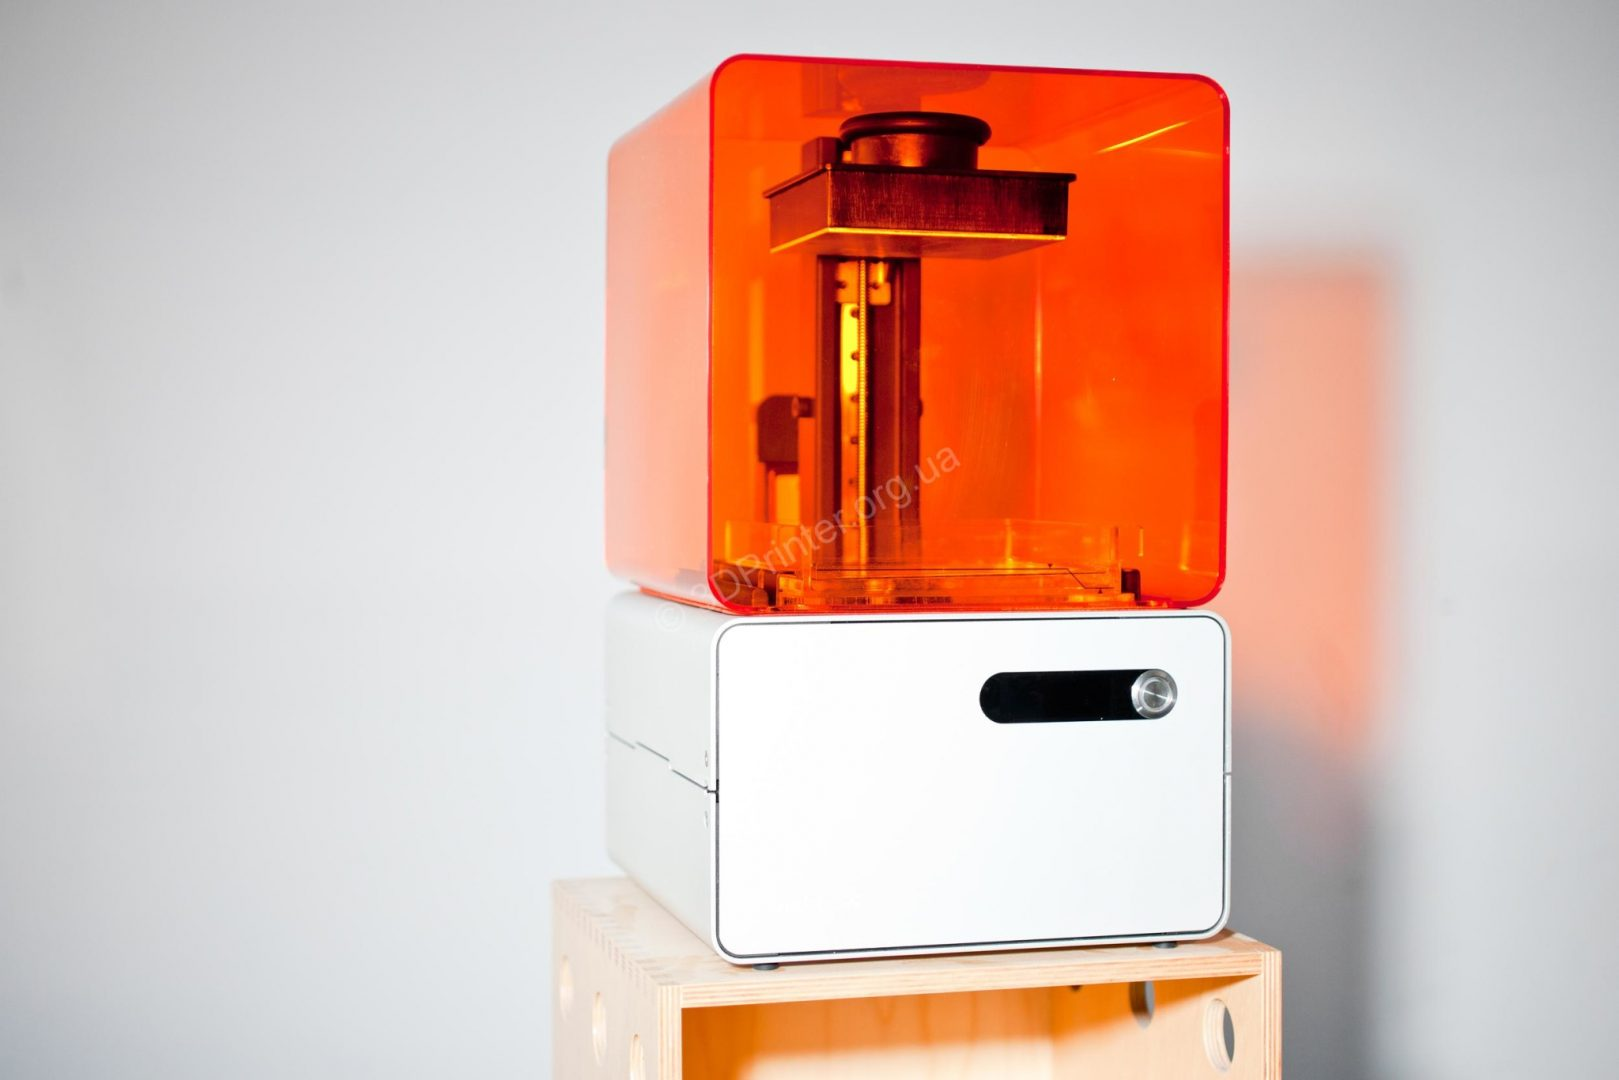 20130904-3D-PRINTER-FORMLABS-004edit